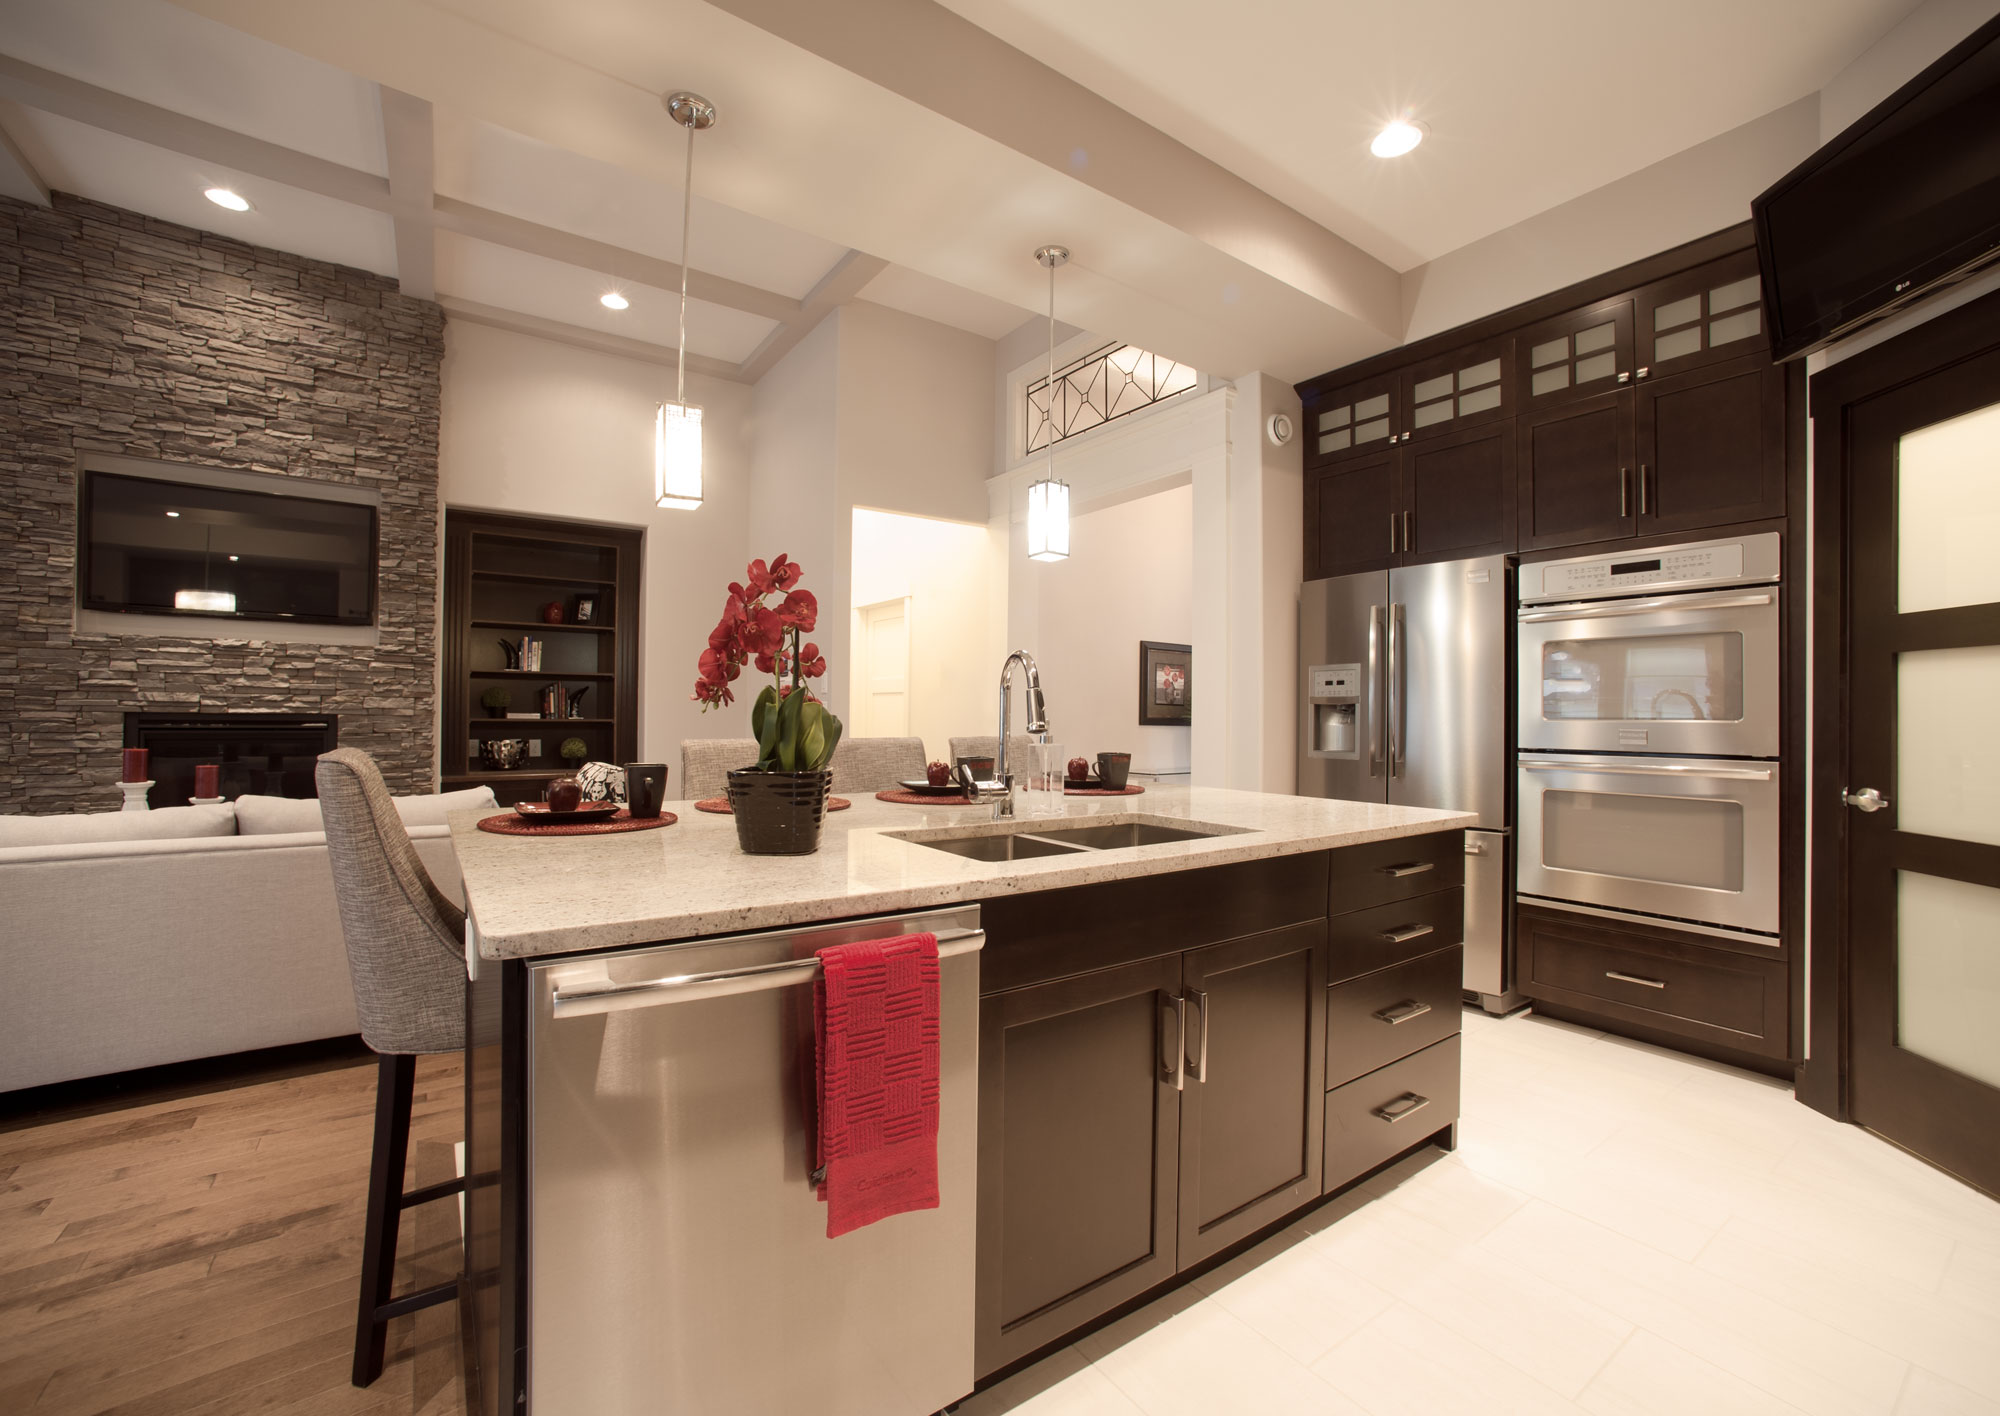 kitchen designs edmonton new homes in edmonton urbanity custom homes ltd 272